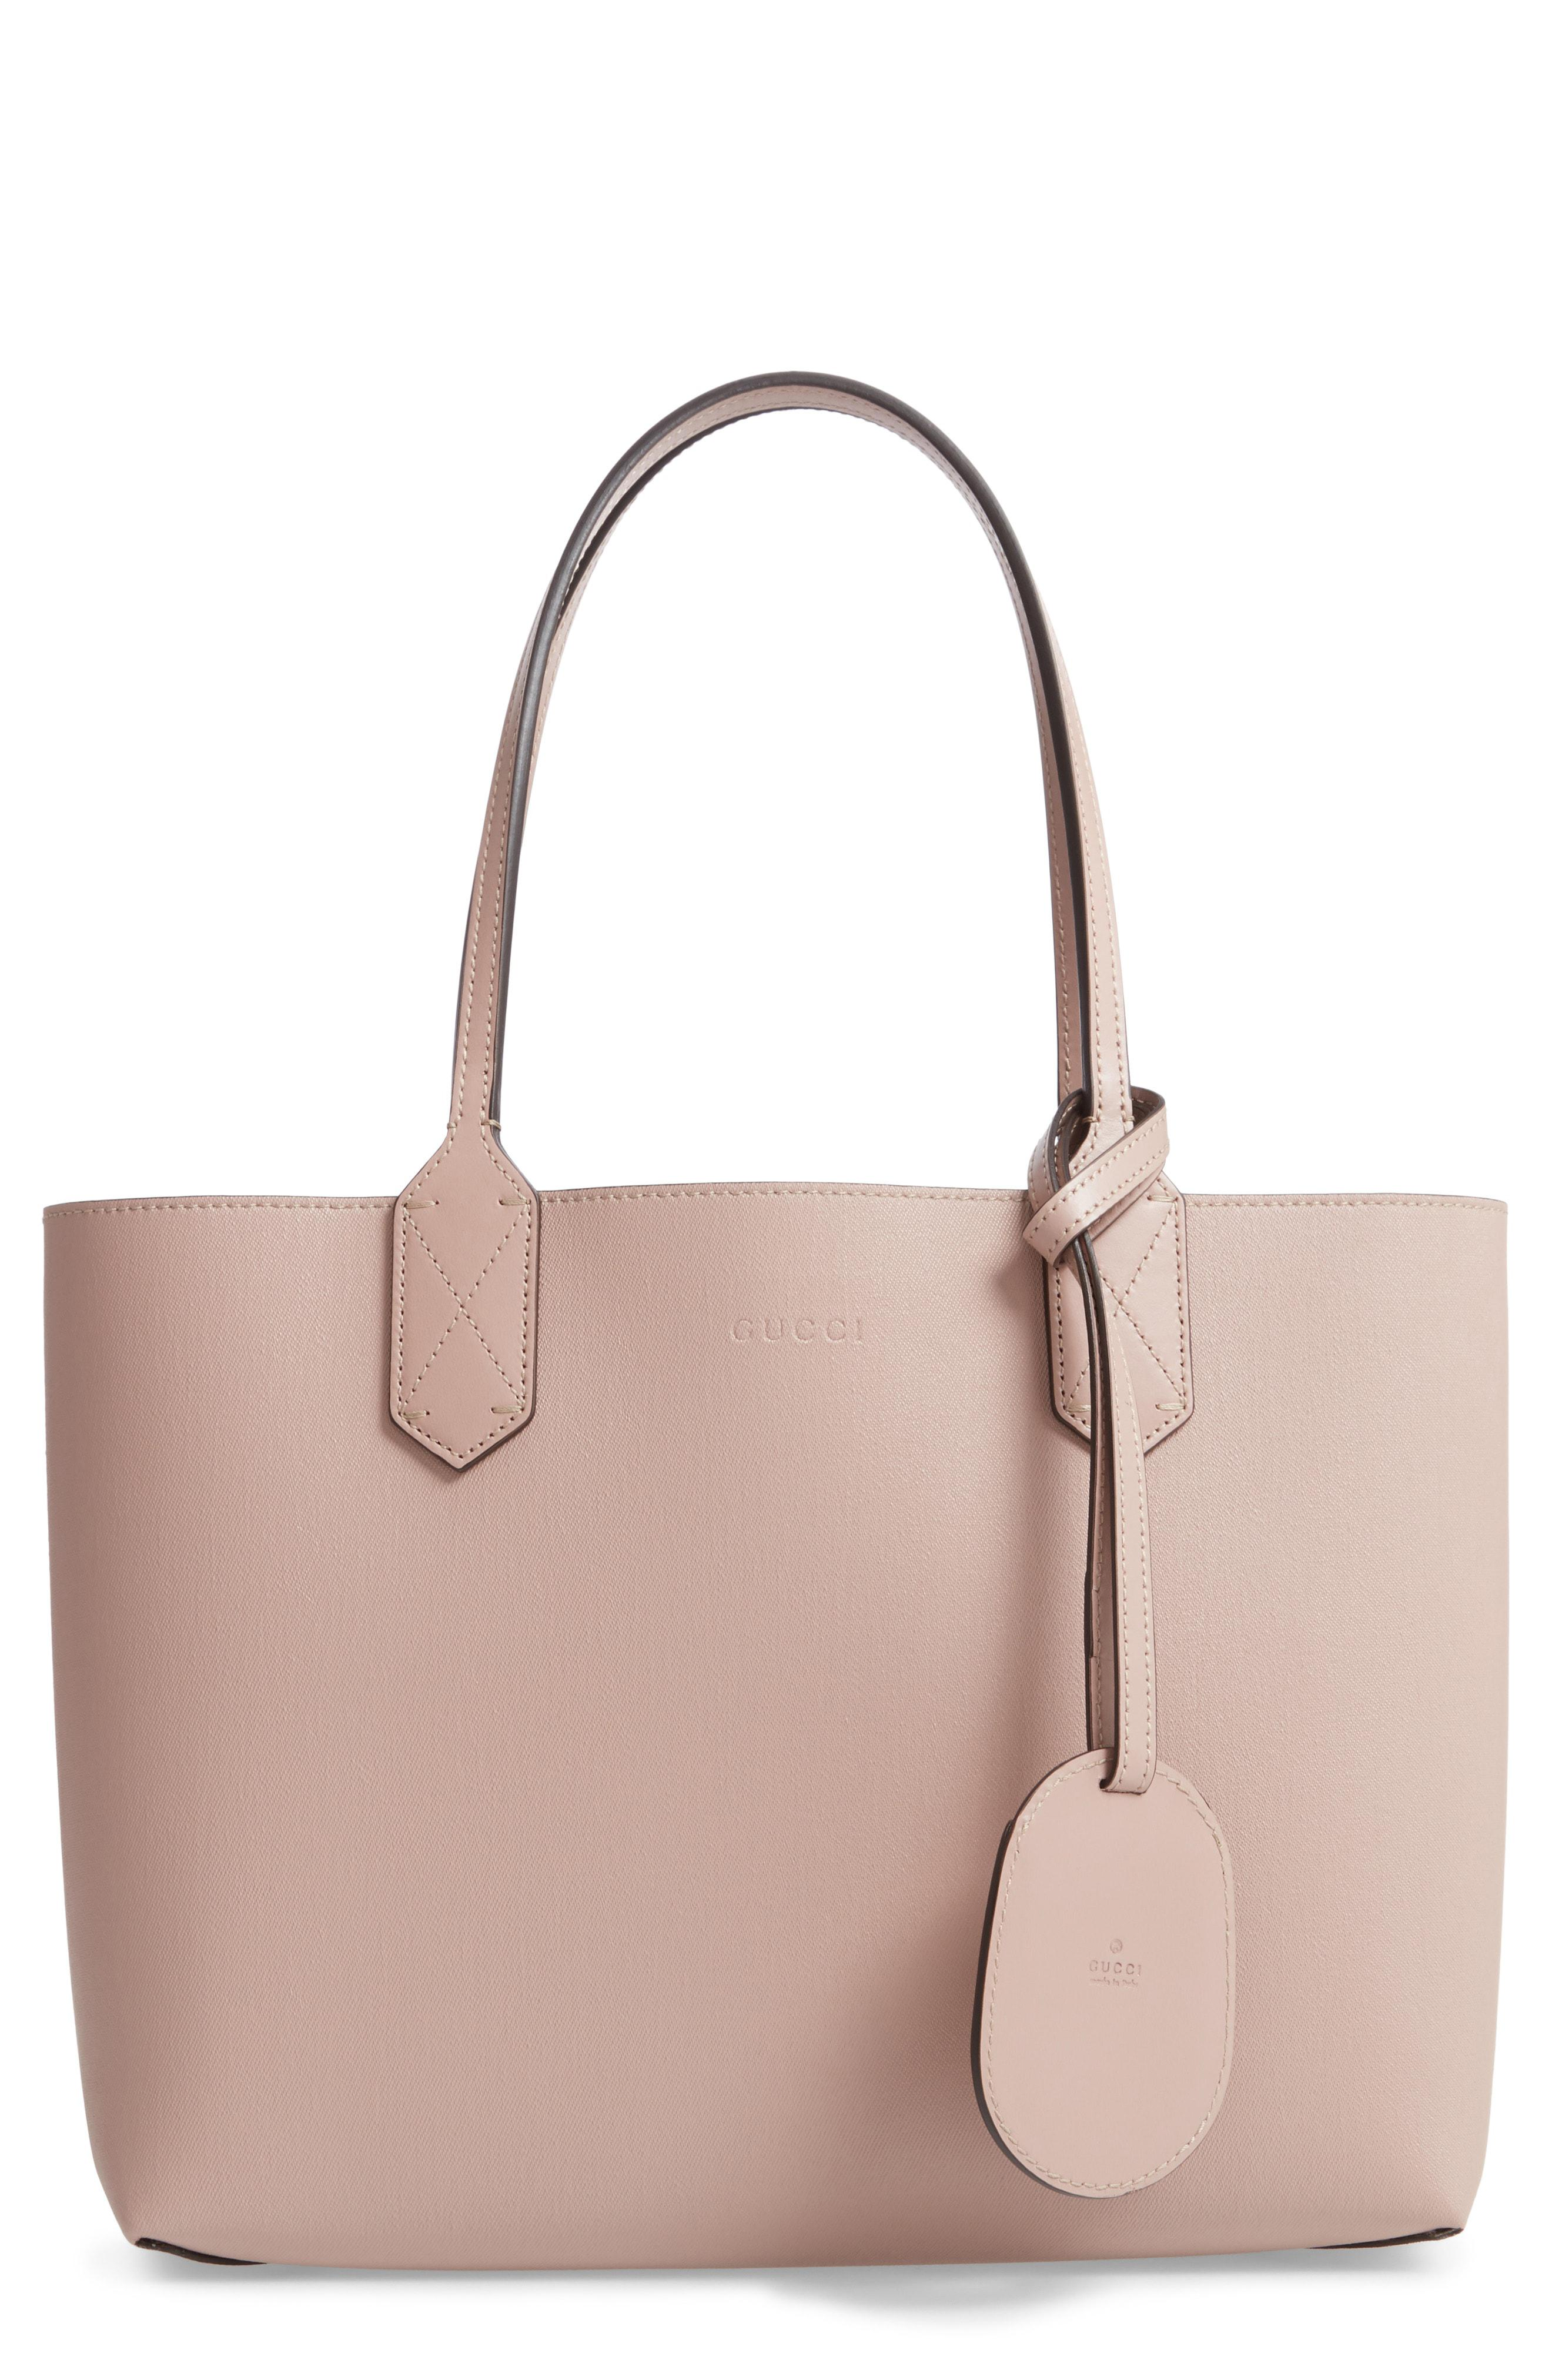 dfdd018bd463 Gallery. Previously sold at: Nordstrom · Women's Reversible Bags